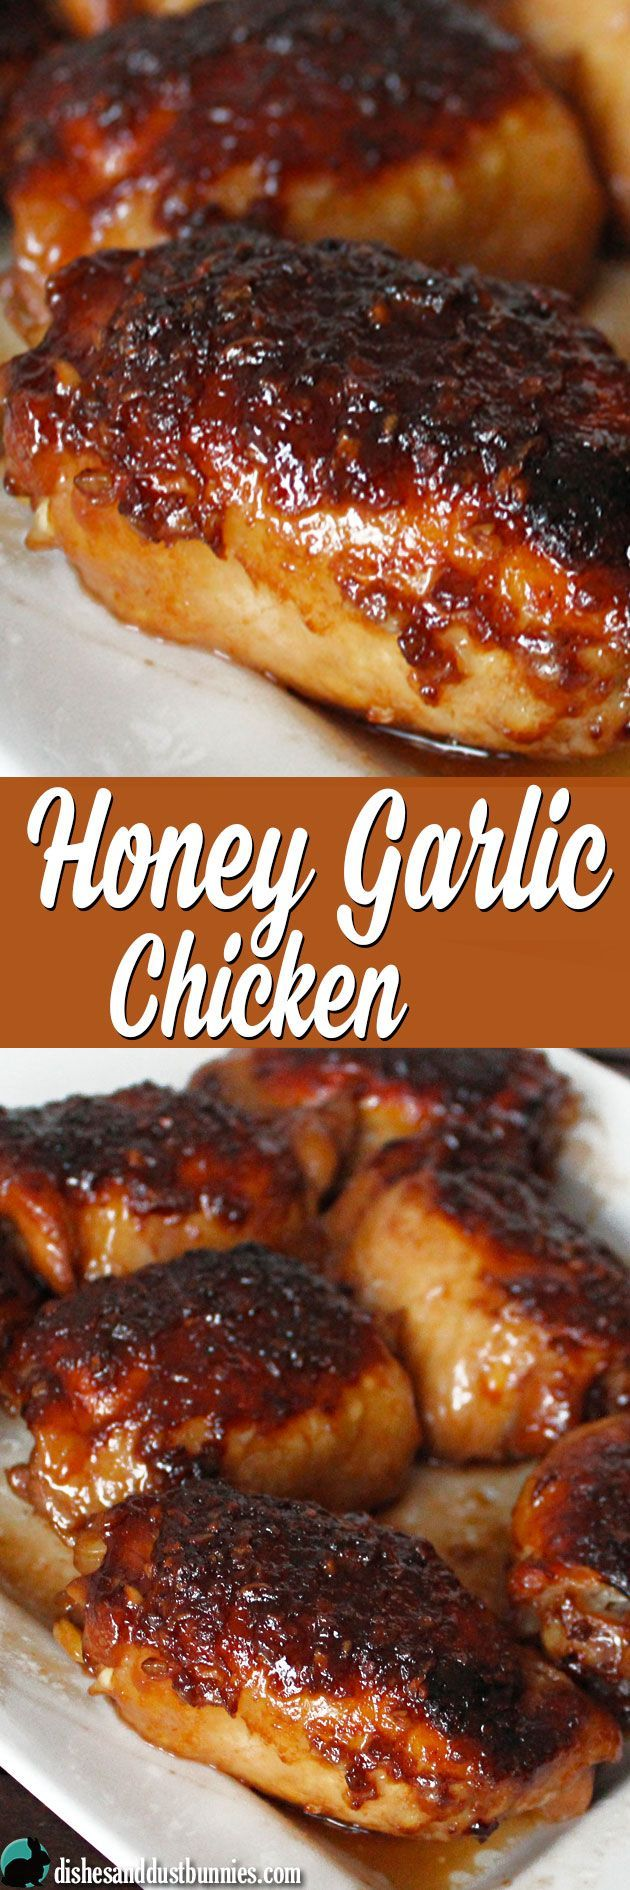 Honey Garlic Chicken (plus some really tasty sauce!) great family meal idea.